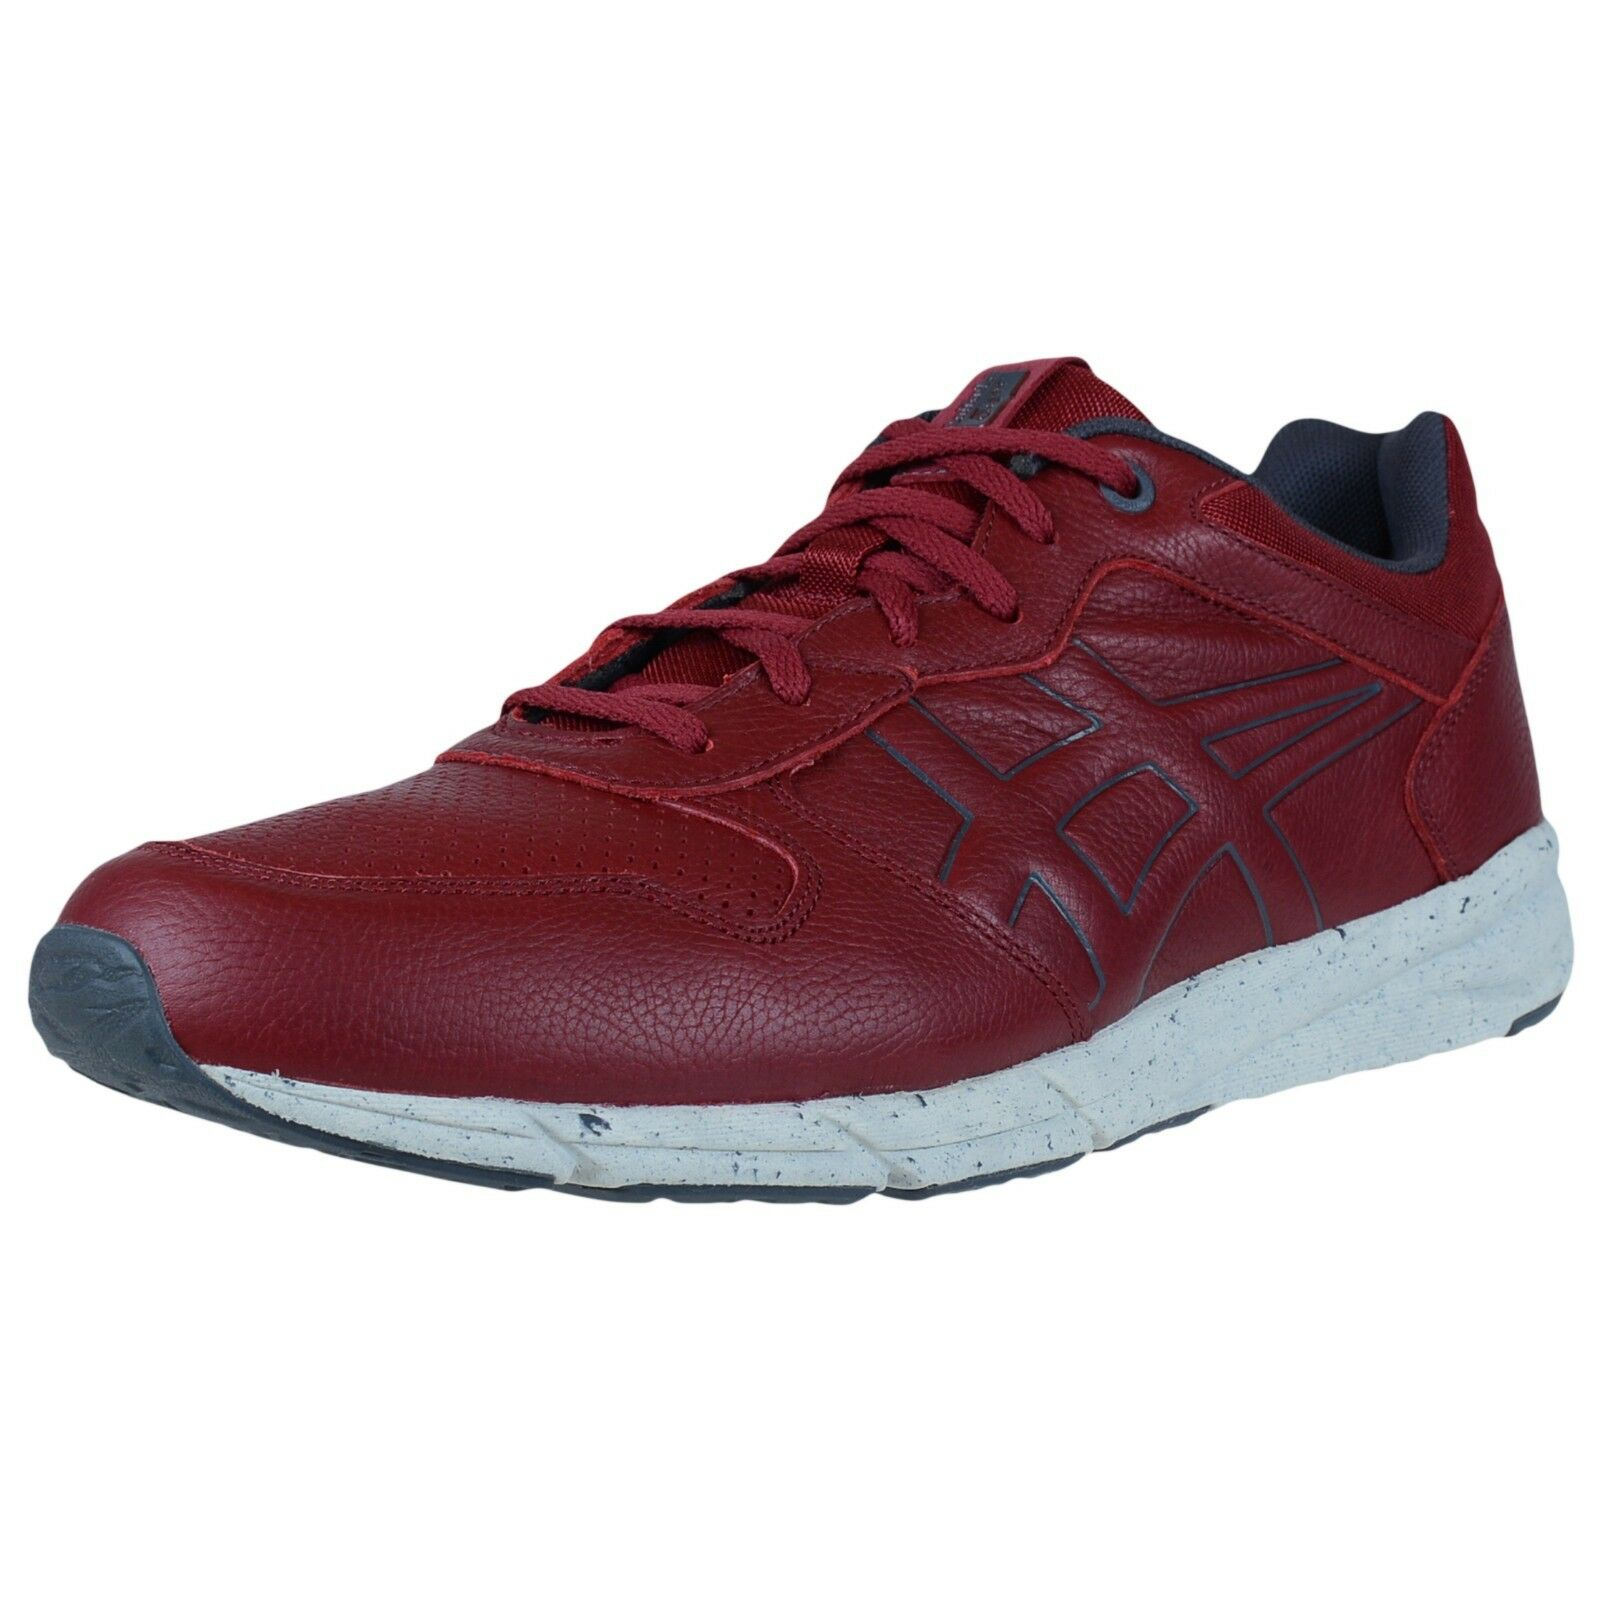 ASICS ONITSUKA TIGER SHAW RUNNER FASHION SNEAKERS BURGUNDY D4P1L 2525